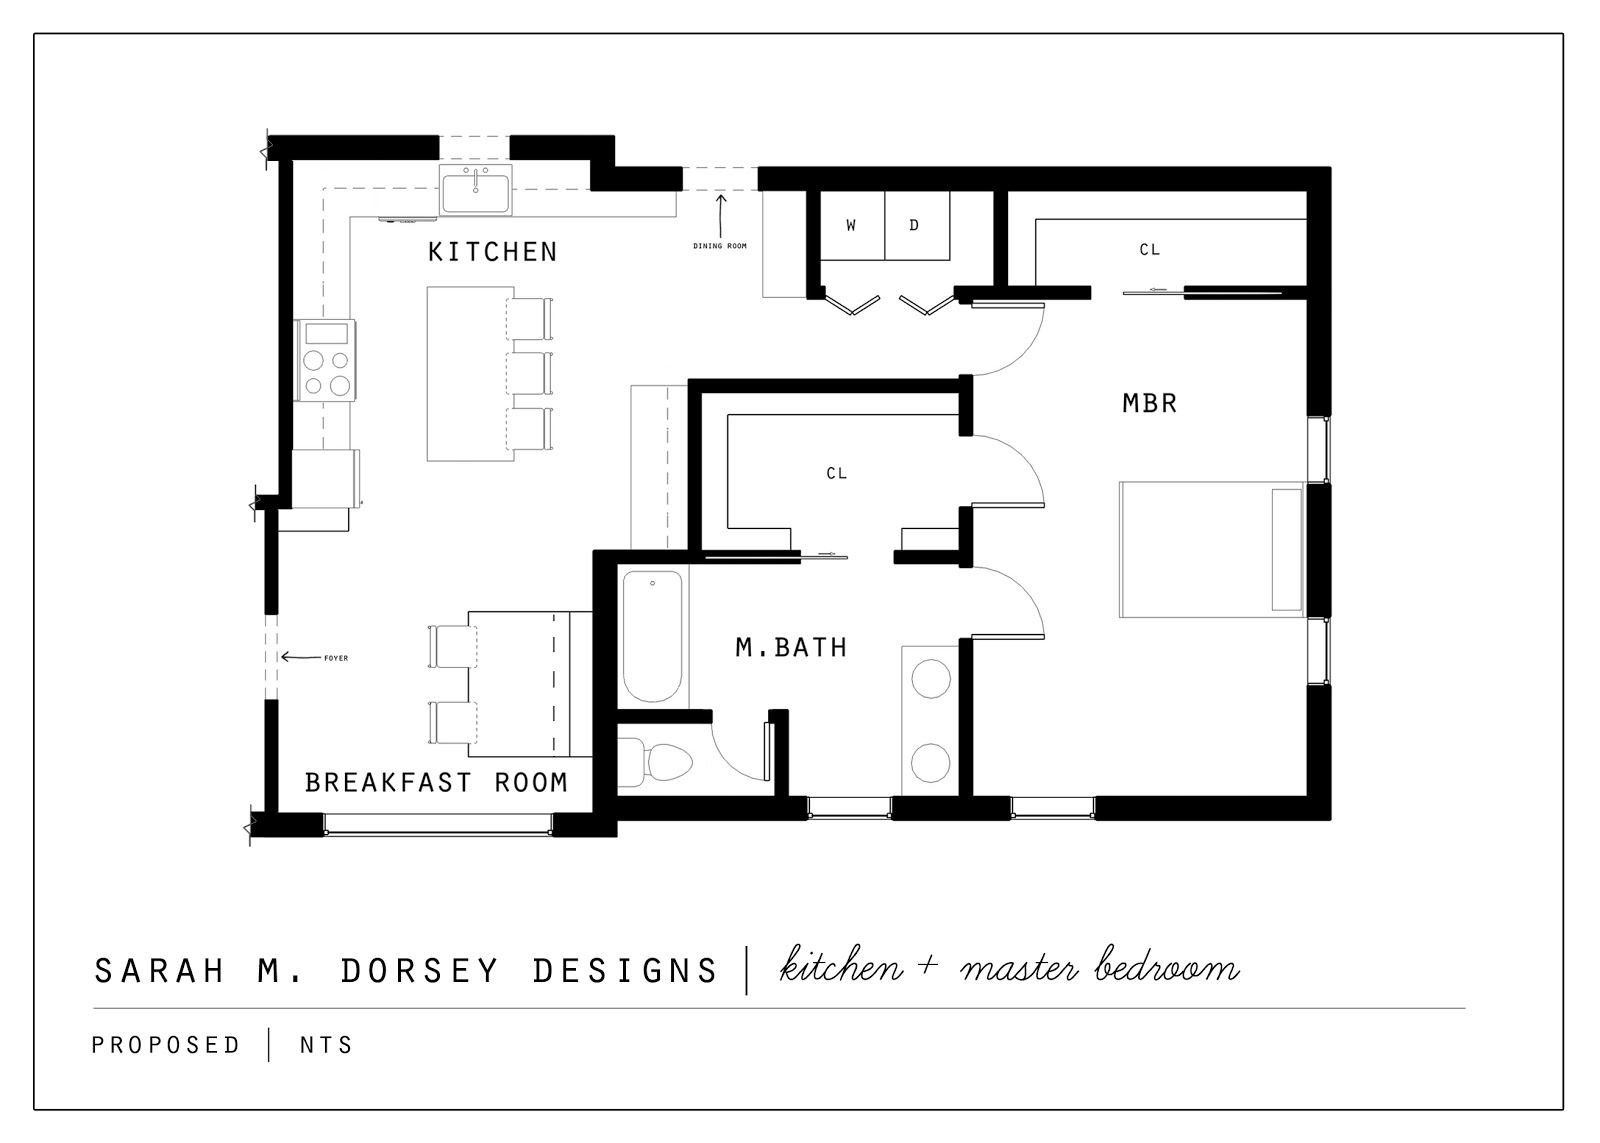 Sarah m dorsey designs proposed kitchen and master suite for Laundry room addition floor plans